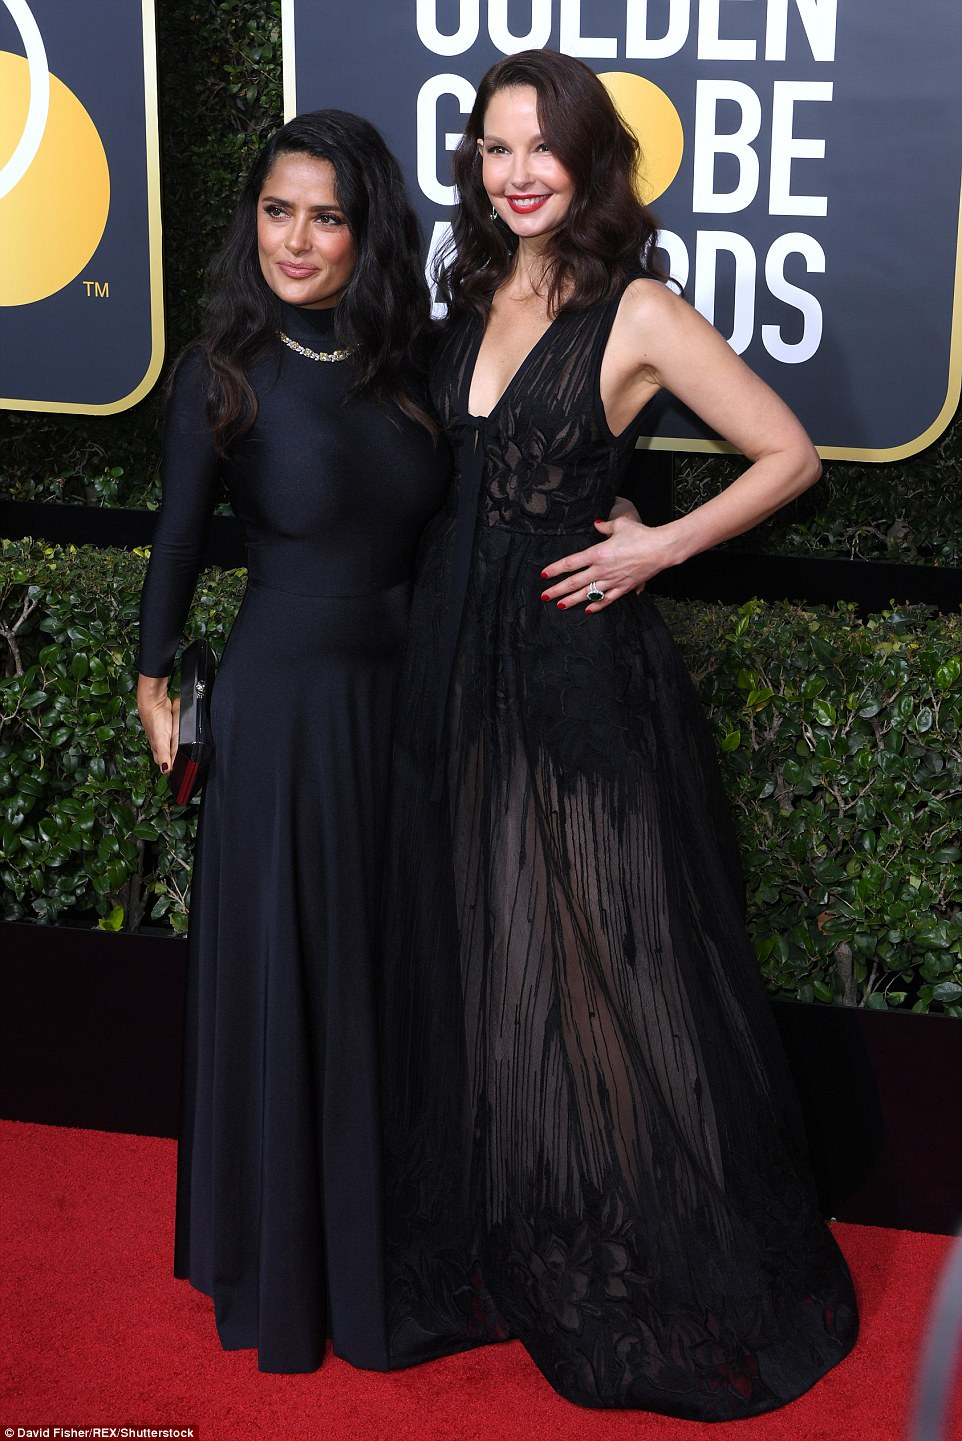 Salma Hayek and Ashley Judd Golden Globes The Beauty Dial